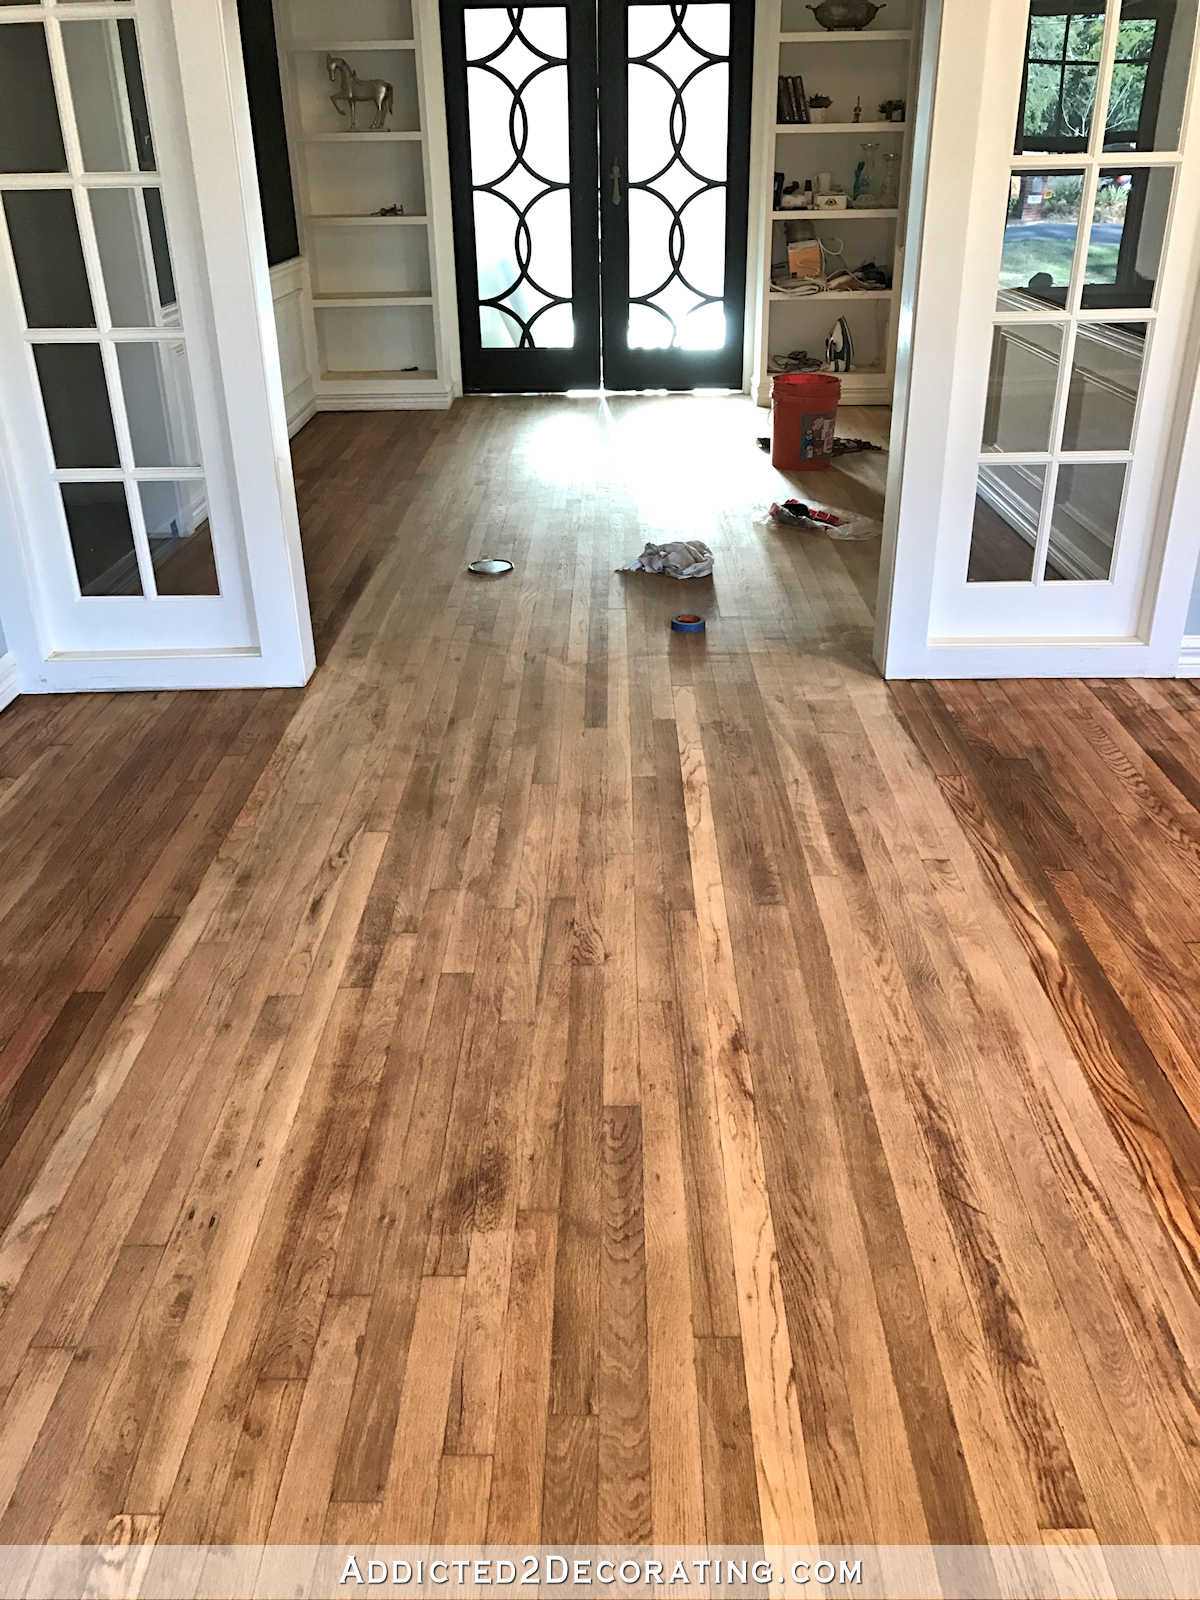 diy sand and stain hardwood floors of adventures in staining my red oak hardwood floors products process for staining red oak hardwood floors 5 music room wood conditioner